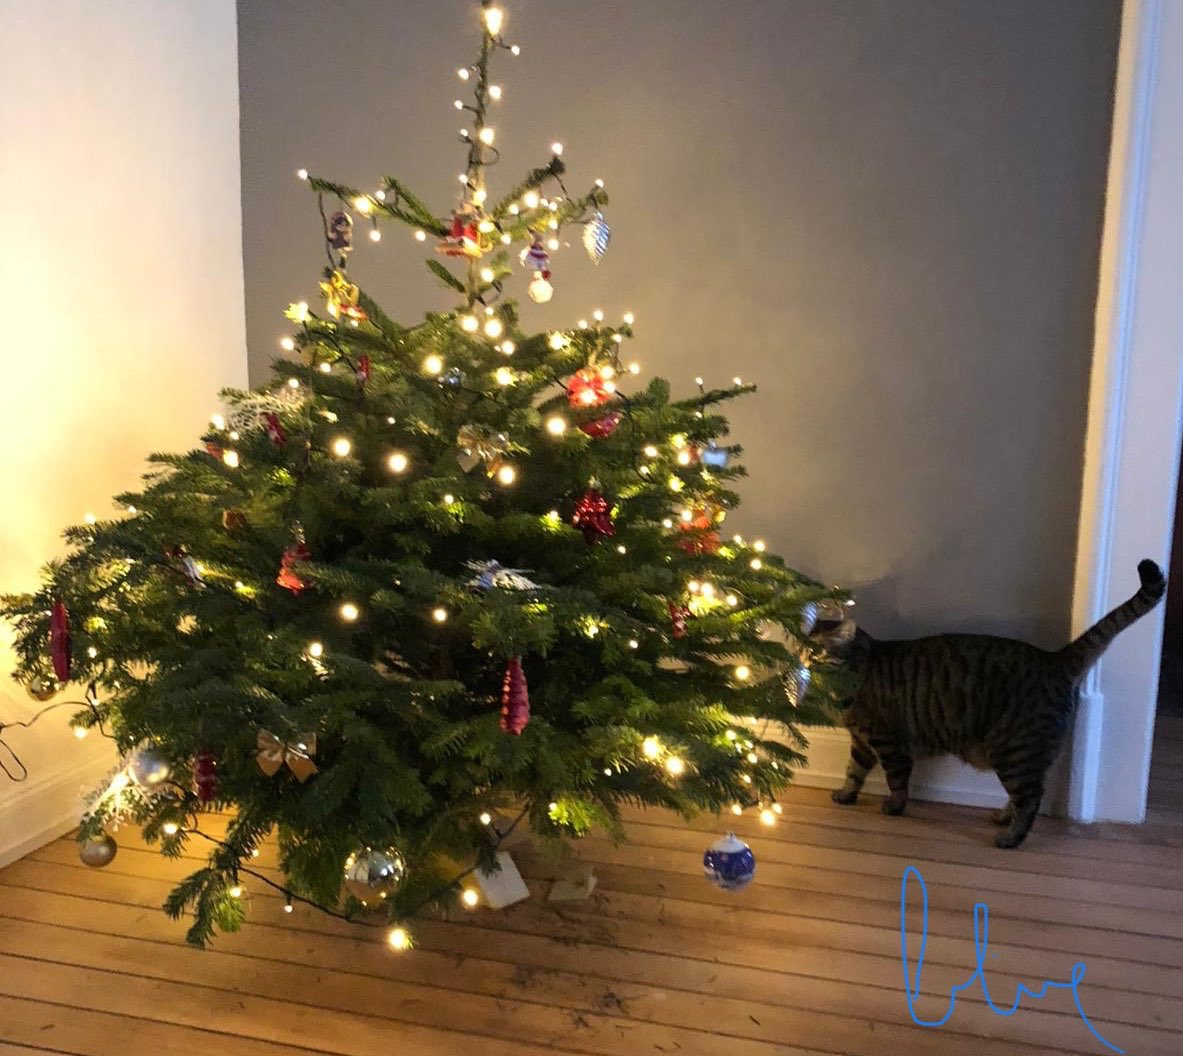 😹 Lets take a look 😻 ... well, today its ok, but tomorrow im not so sure 😂 (said the cat 🤣) ❄️ Hello Twitterland ❄️ Hoping that your Christmas trees are safe 😸 i wish you a perfect new week 💕 #Blue💙